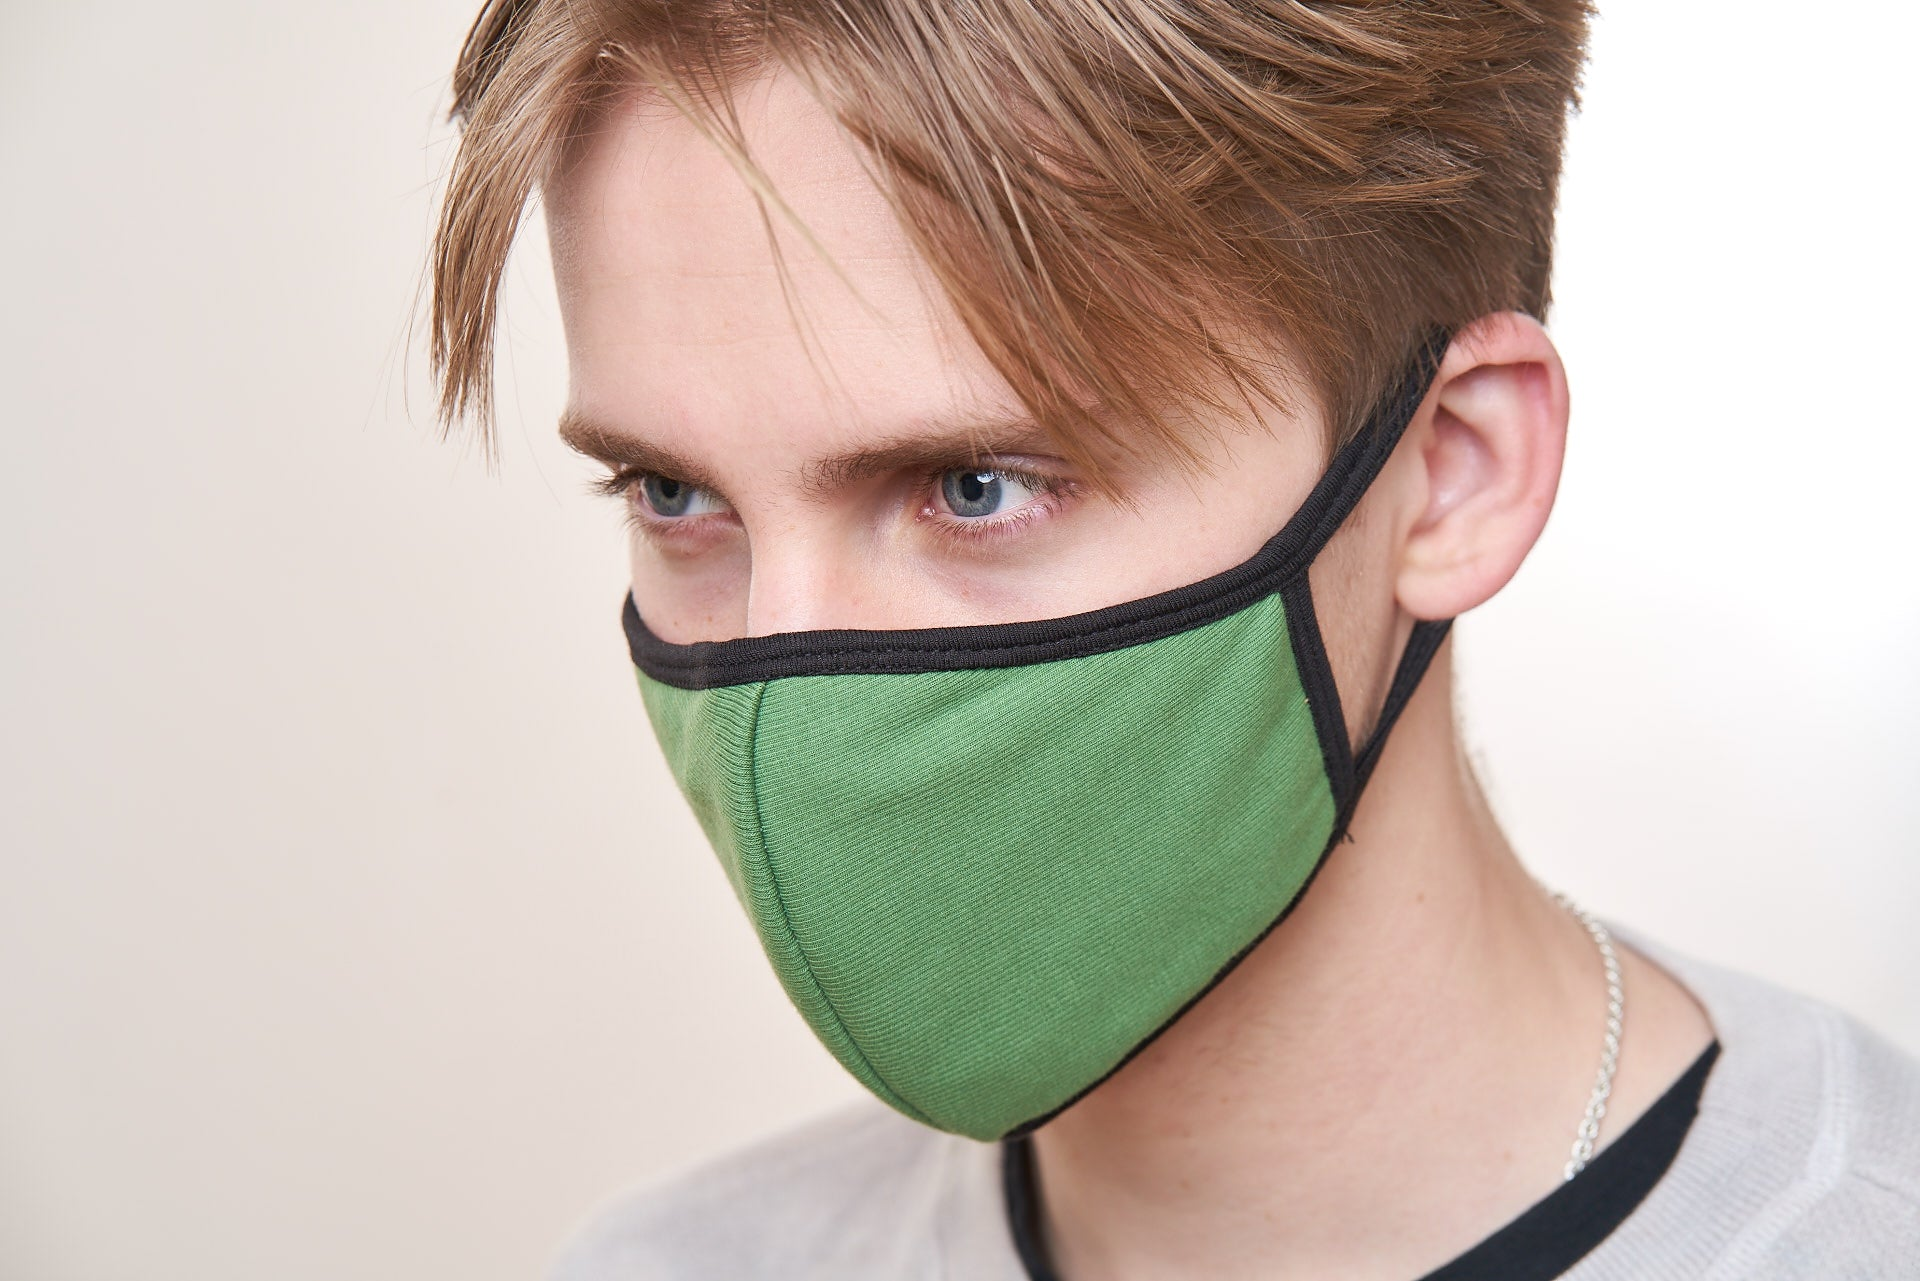 Young man wears a green face mask with black trim.